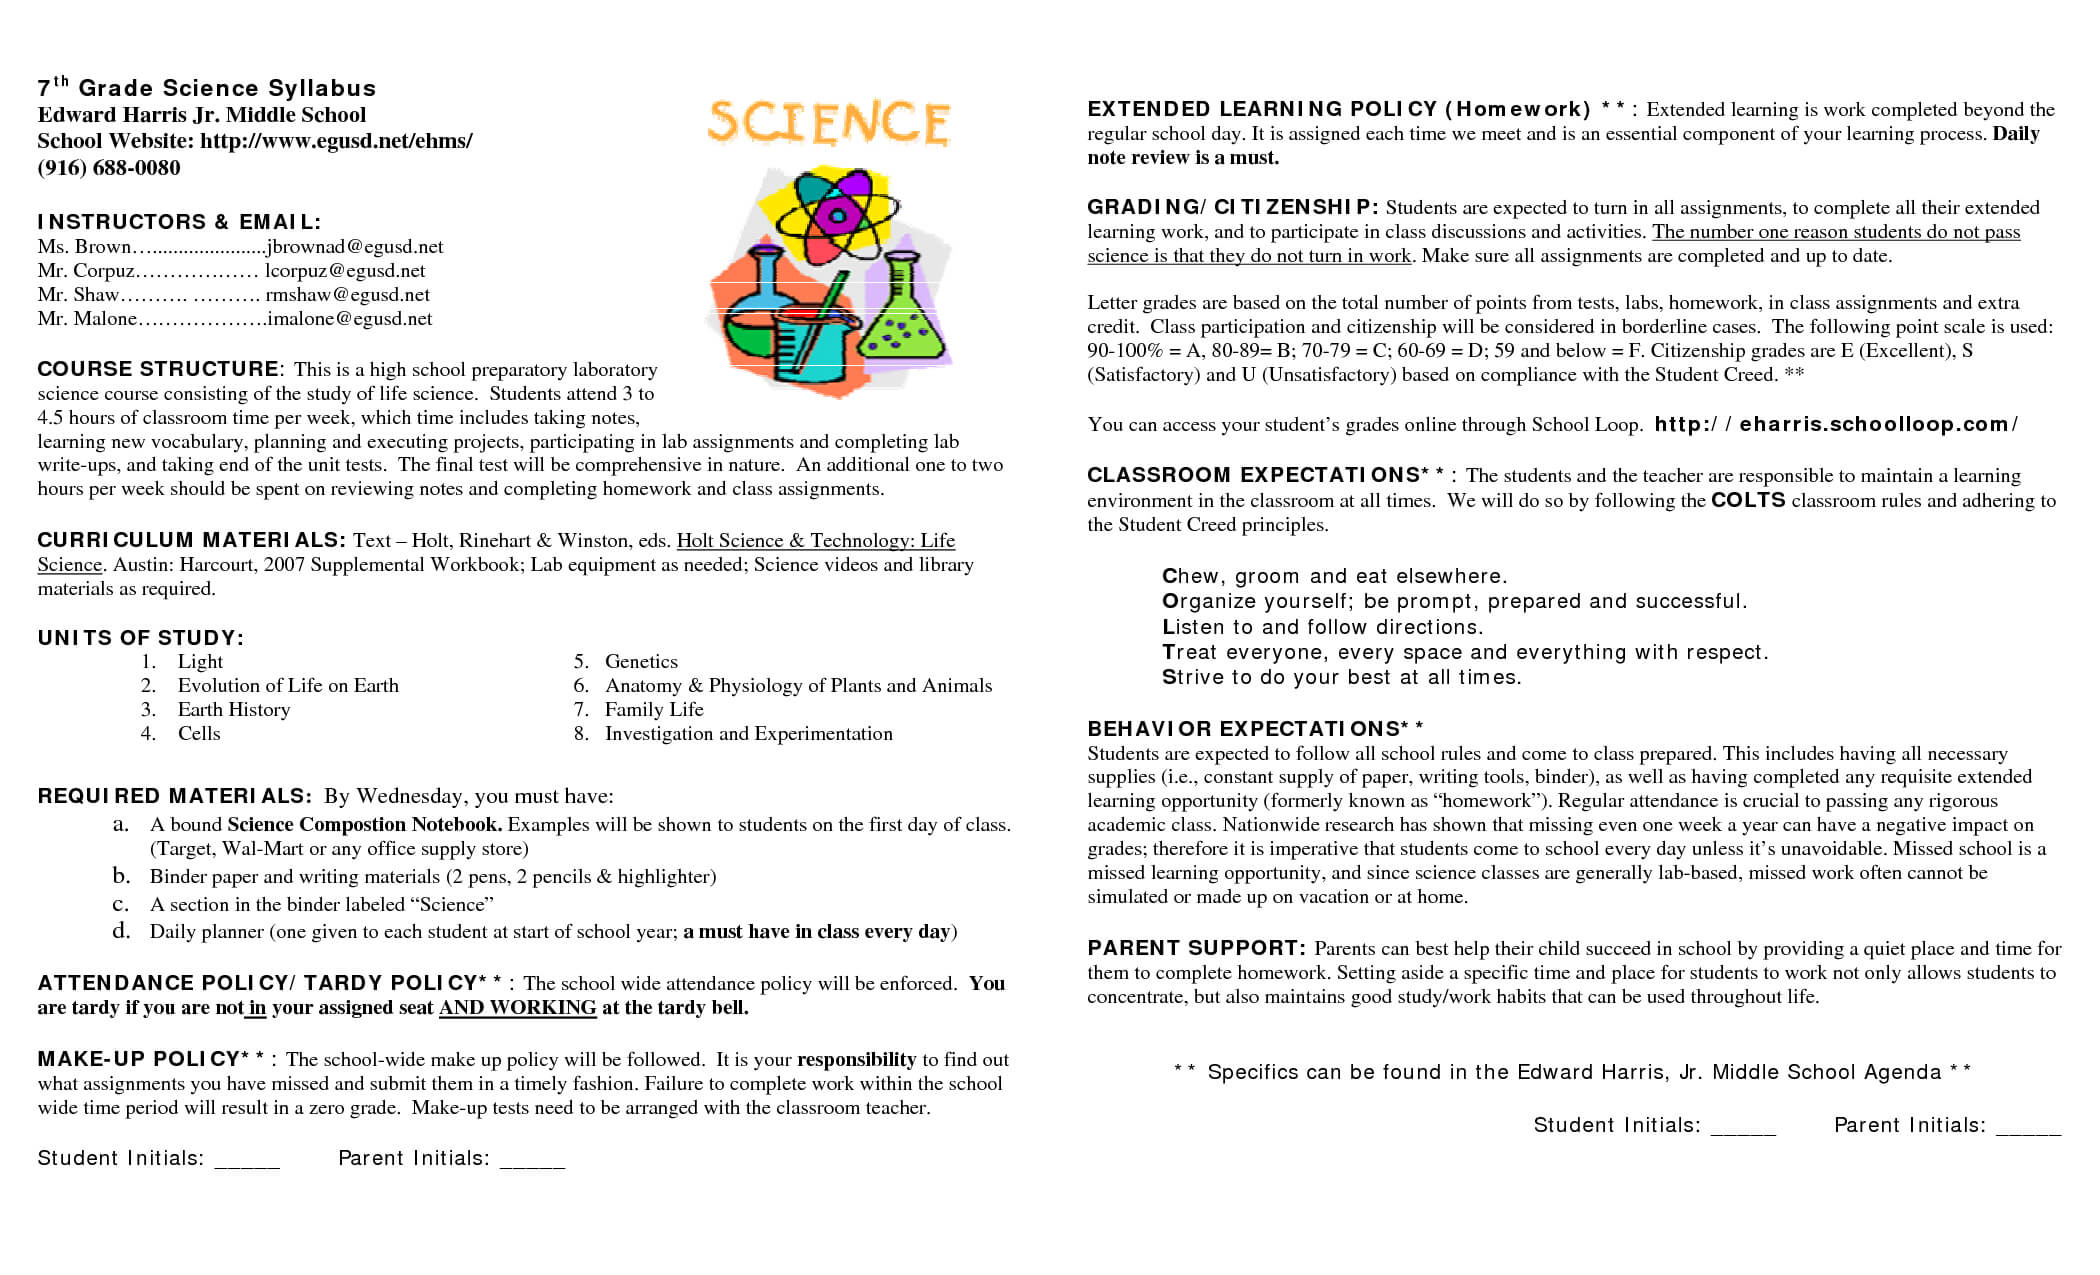 15 Awesome Syllabus Template For Middle School Images Inside Blank Syllabus Template